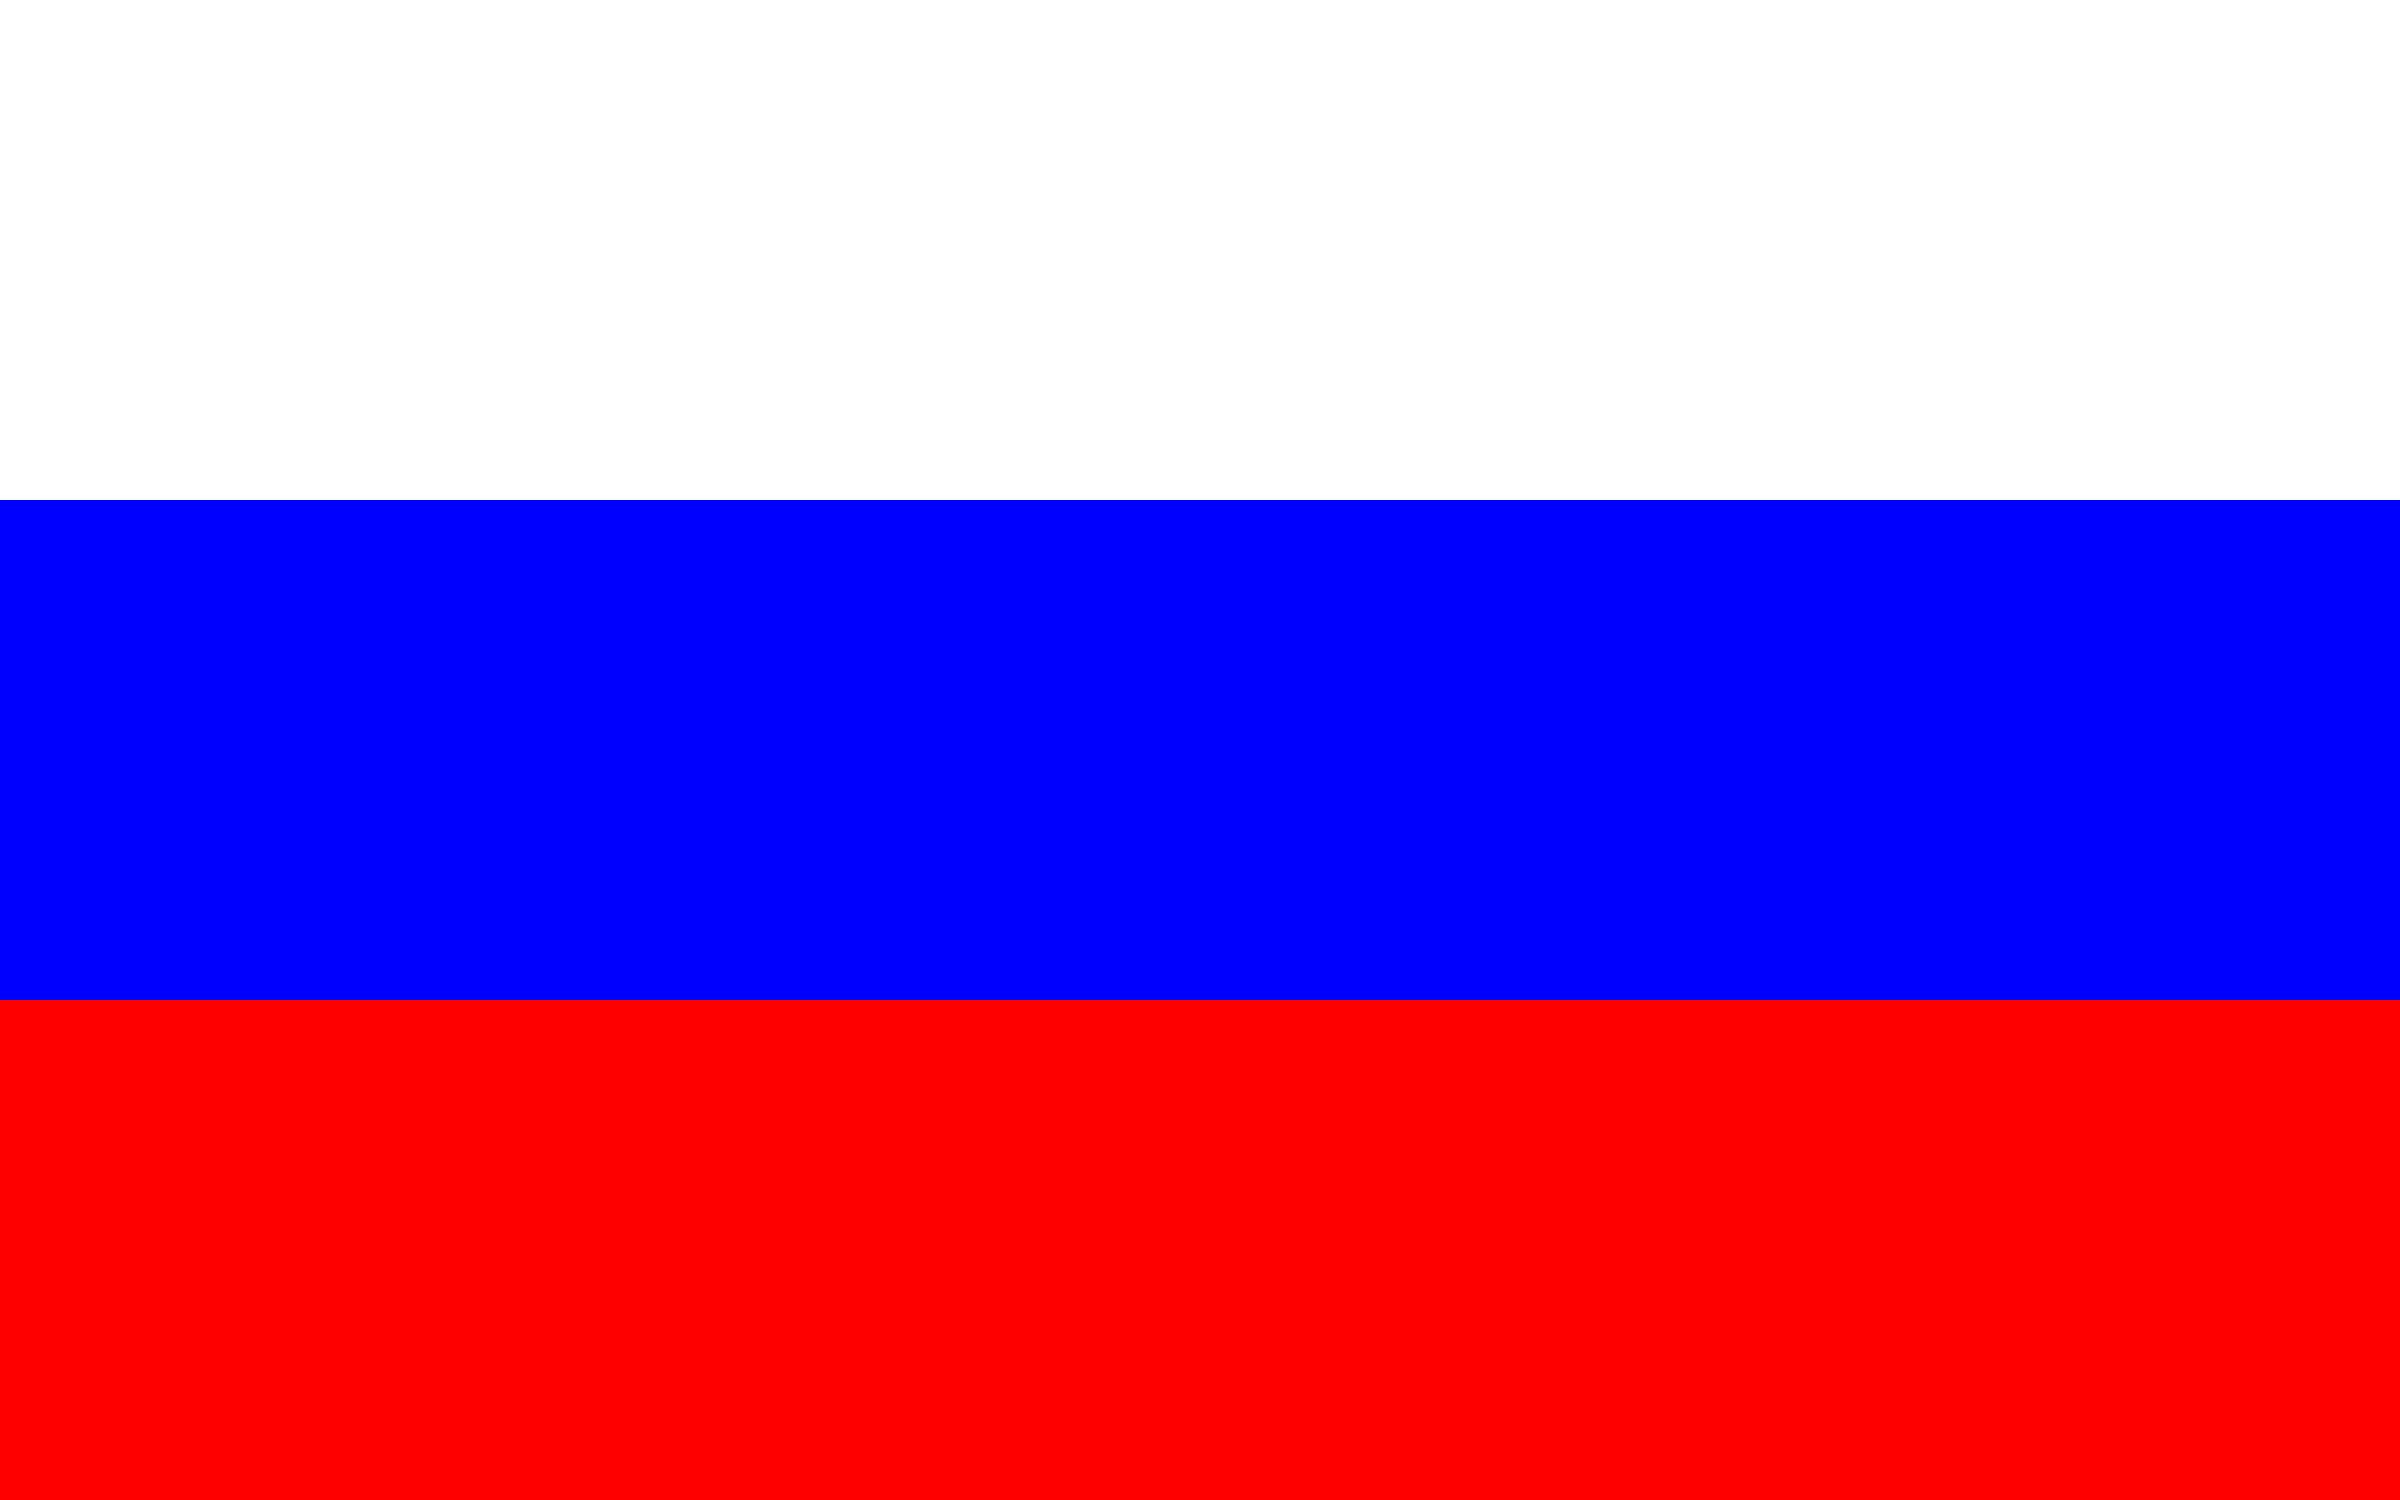 Russian Federation This 64